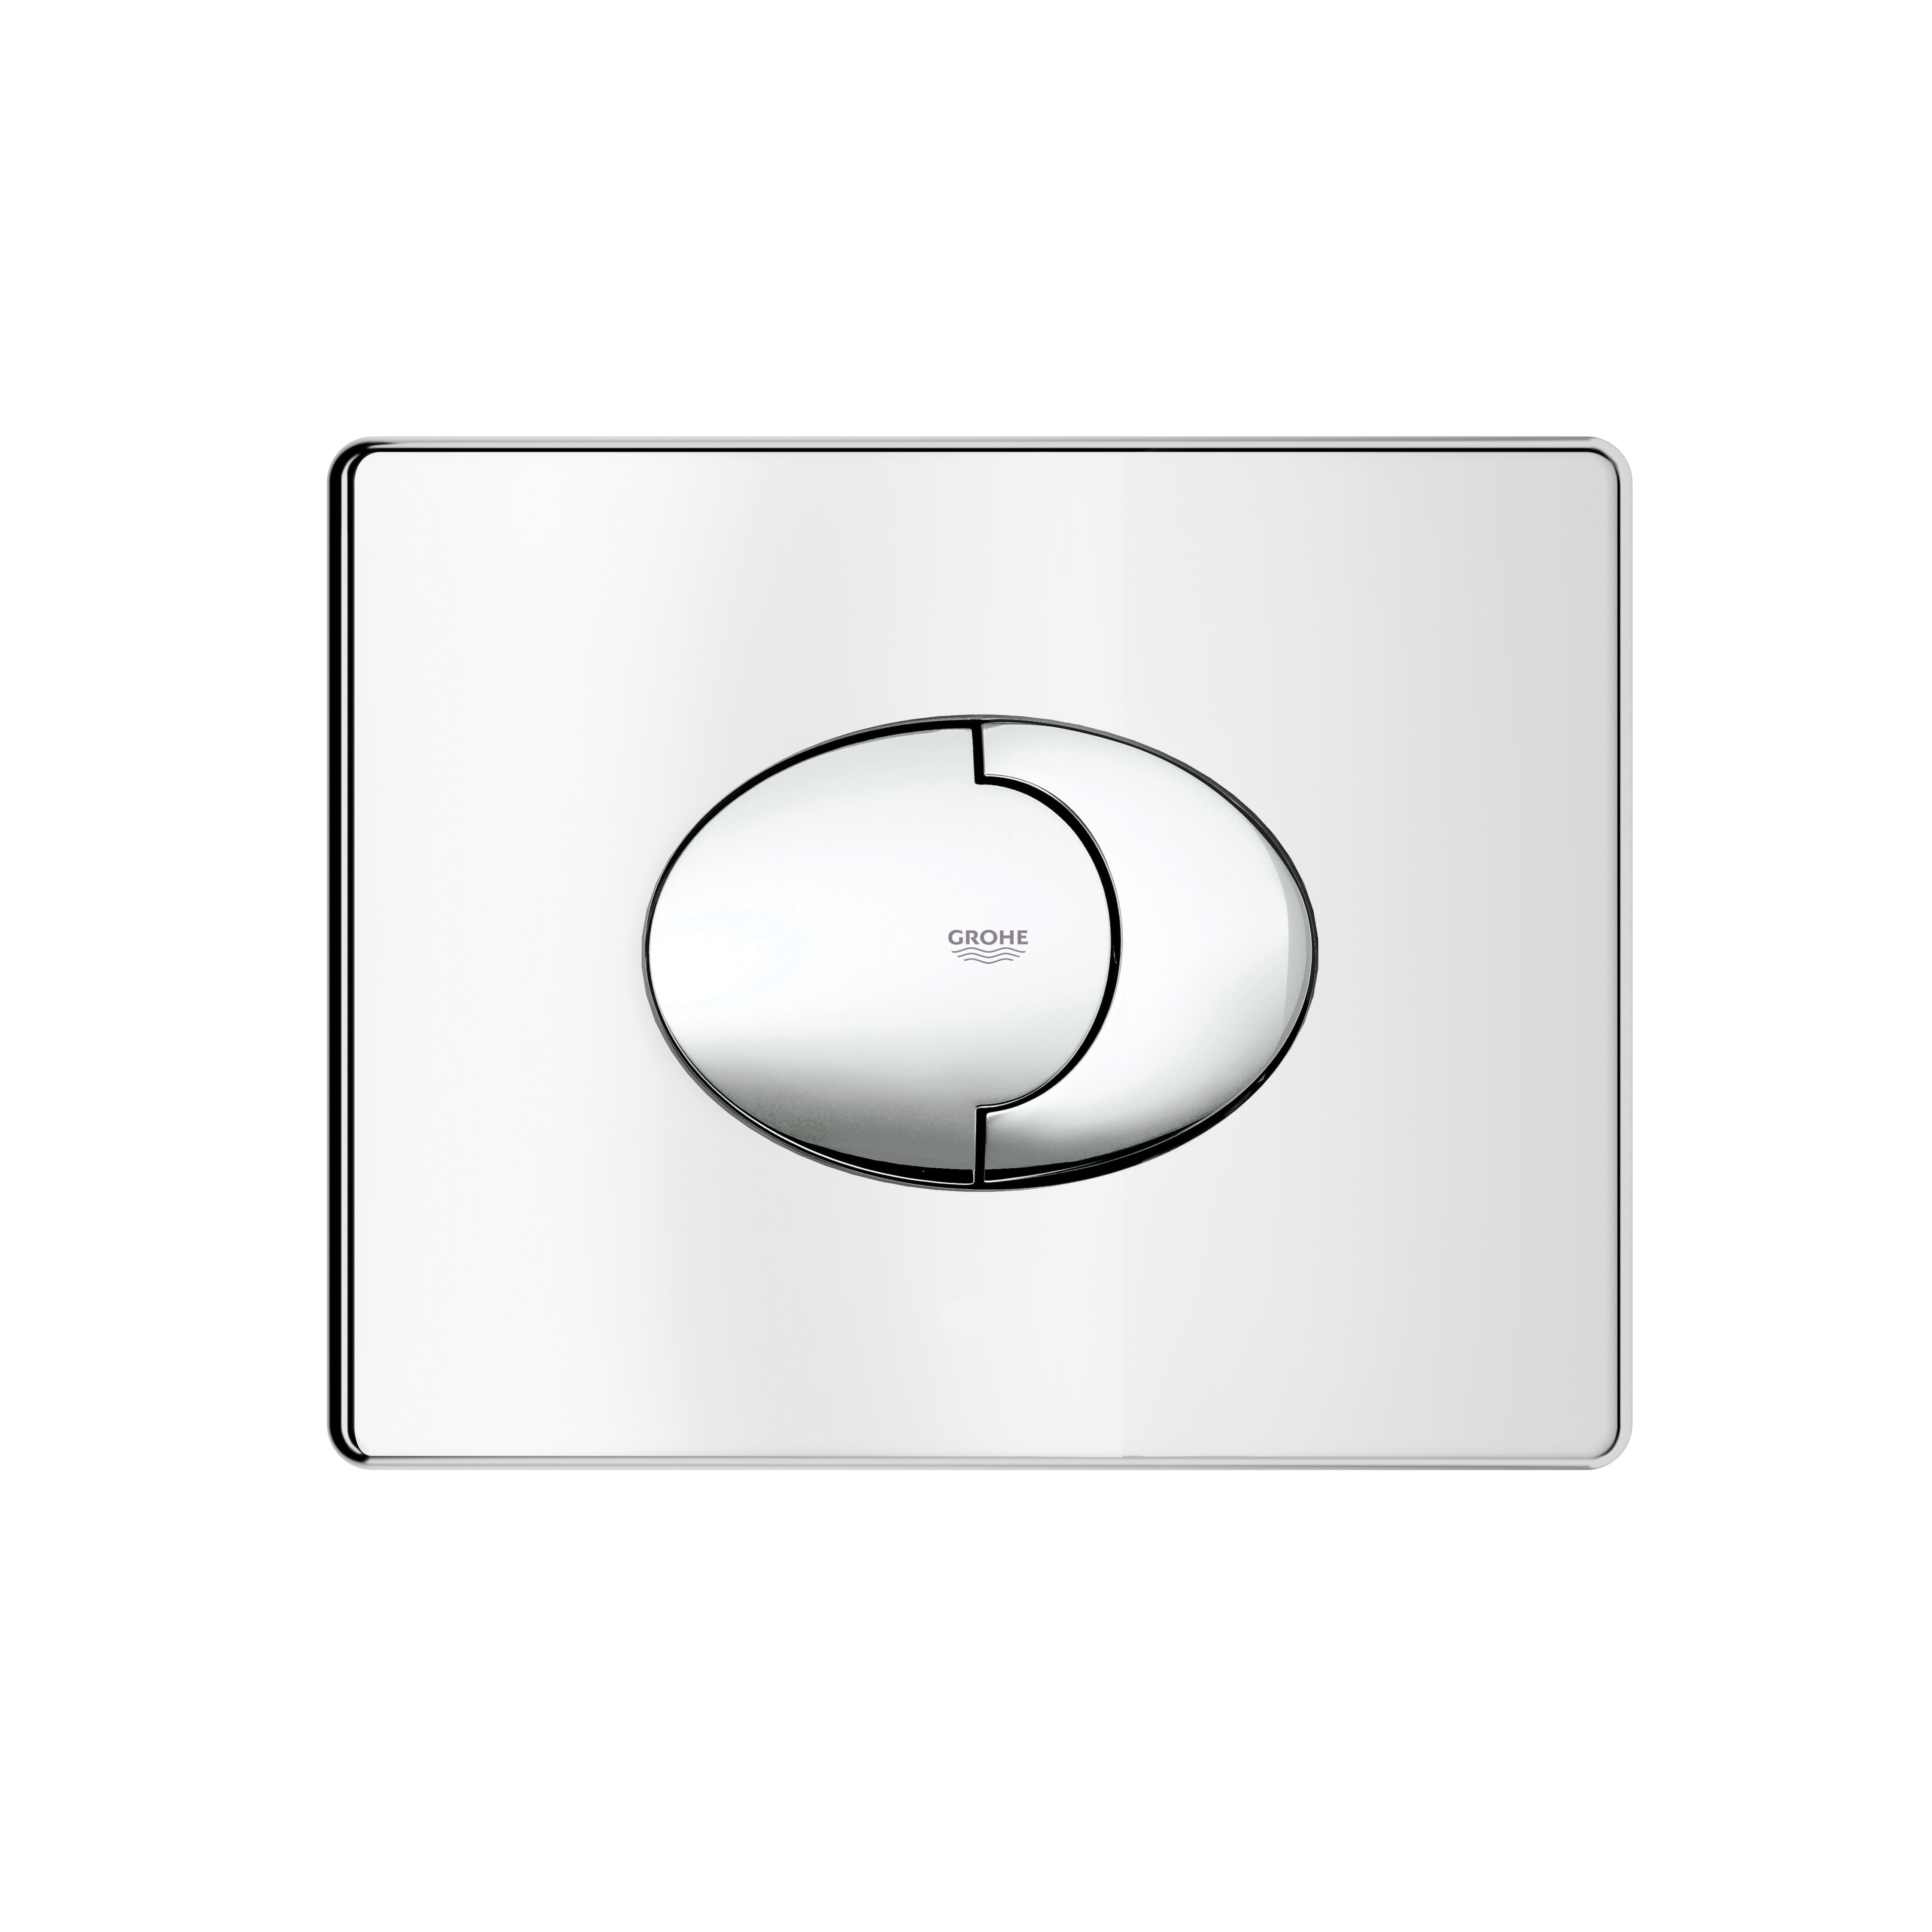 GROHE 38506000 Skate Air Wall Plate, For Use With Dual Flush or Start/Stop Actuation and AV1 Pneumatic Discharge Valve, ABS, StarLight® Chrome Plated, Import